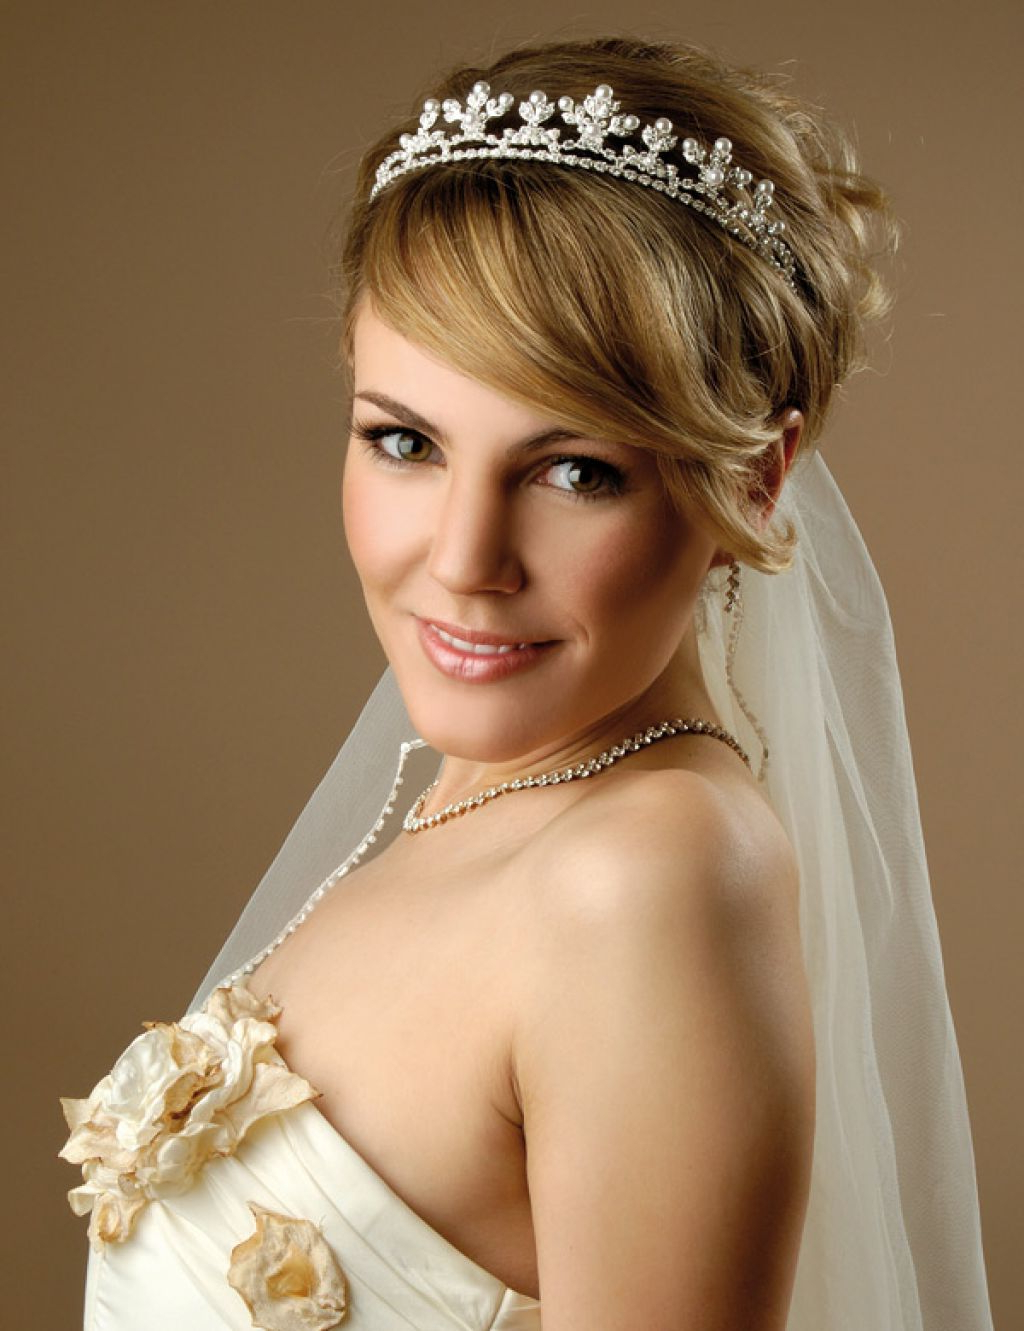 Short Bridal Hairstyles With Veil – Hairstyle For Women & Man Throughout Bridal Hairstyles Short Hair (View 15 of 25)